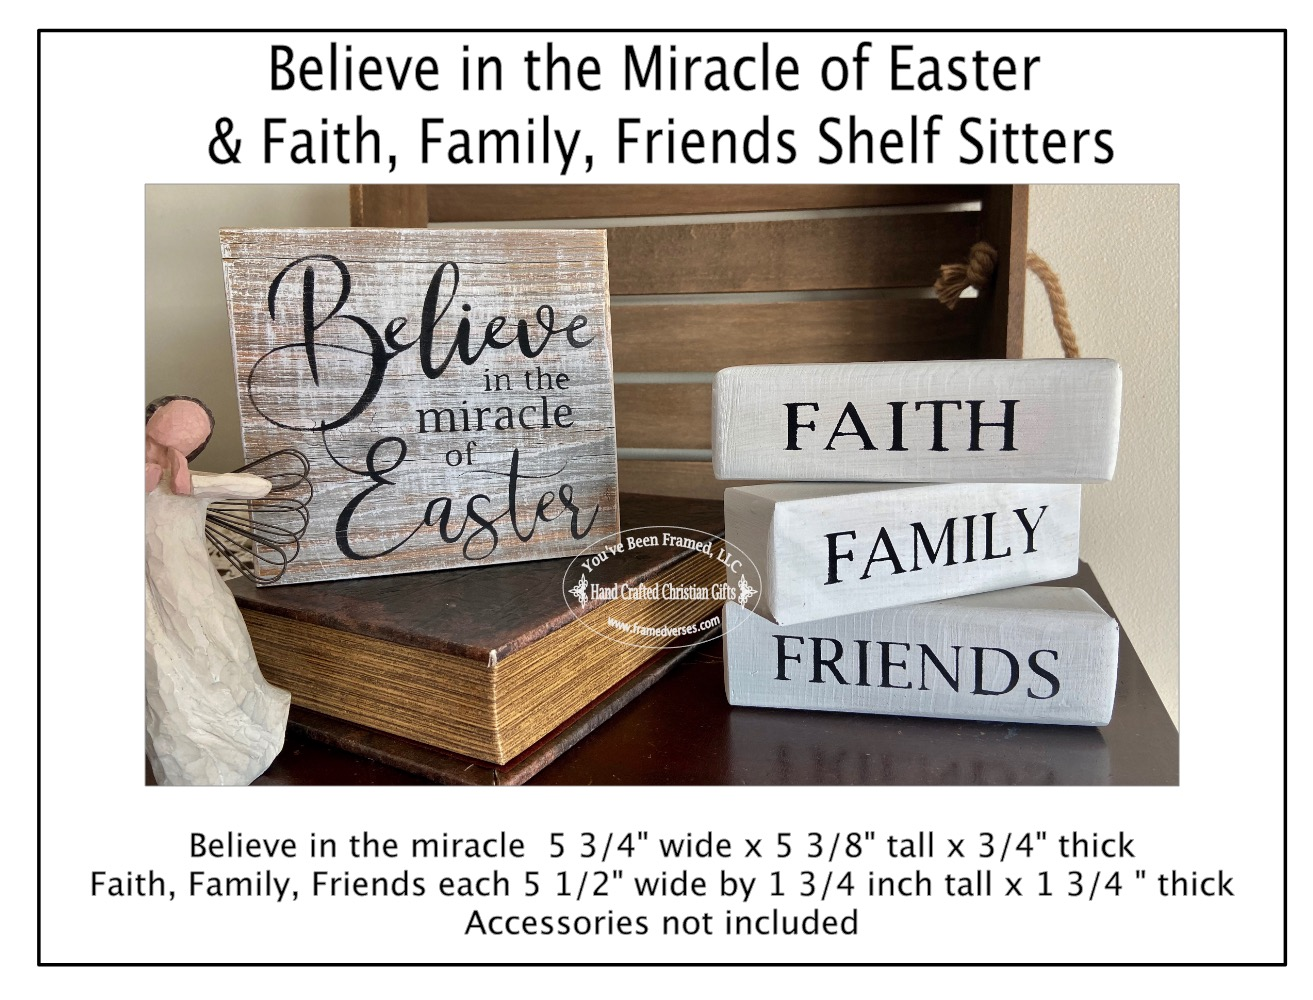 Believe in the Miracle of Easter and Faith Family Friends Shelf Sitters